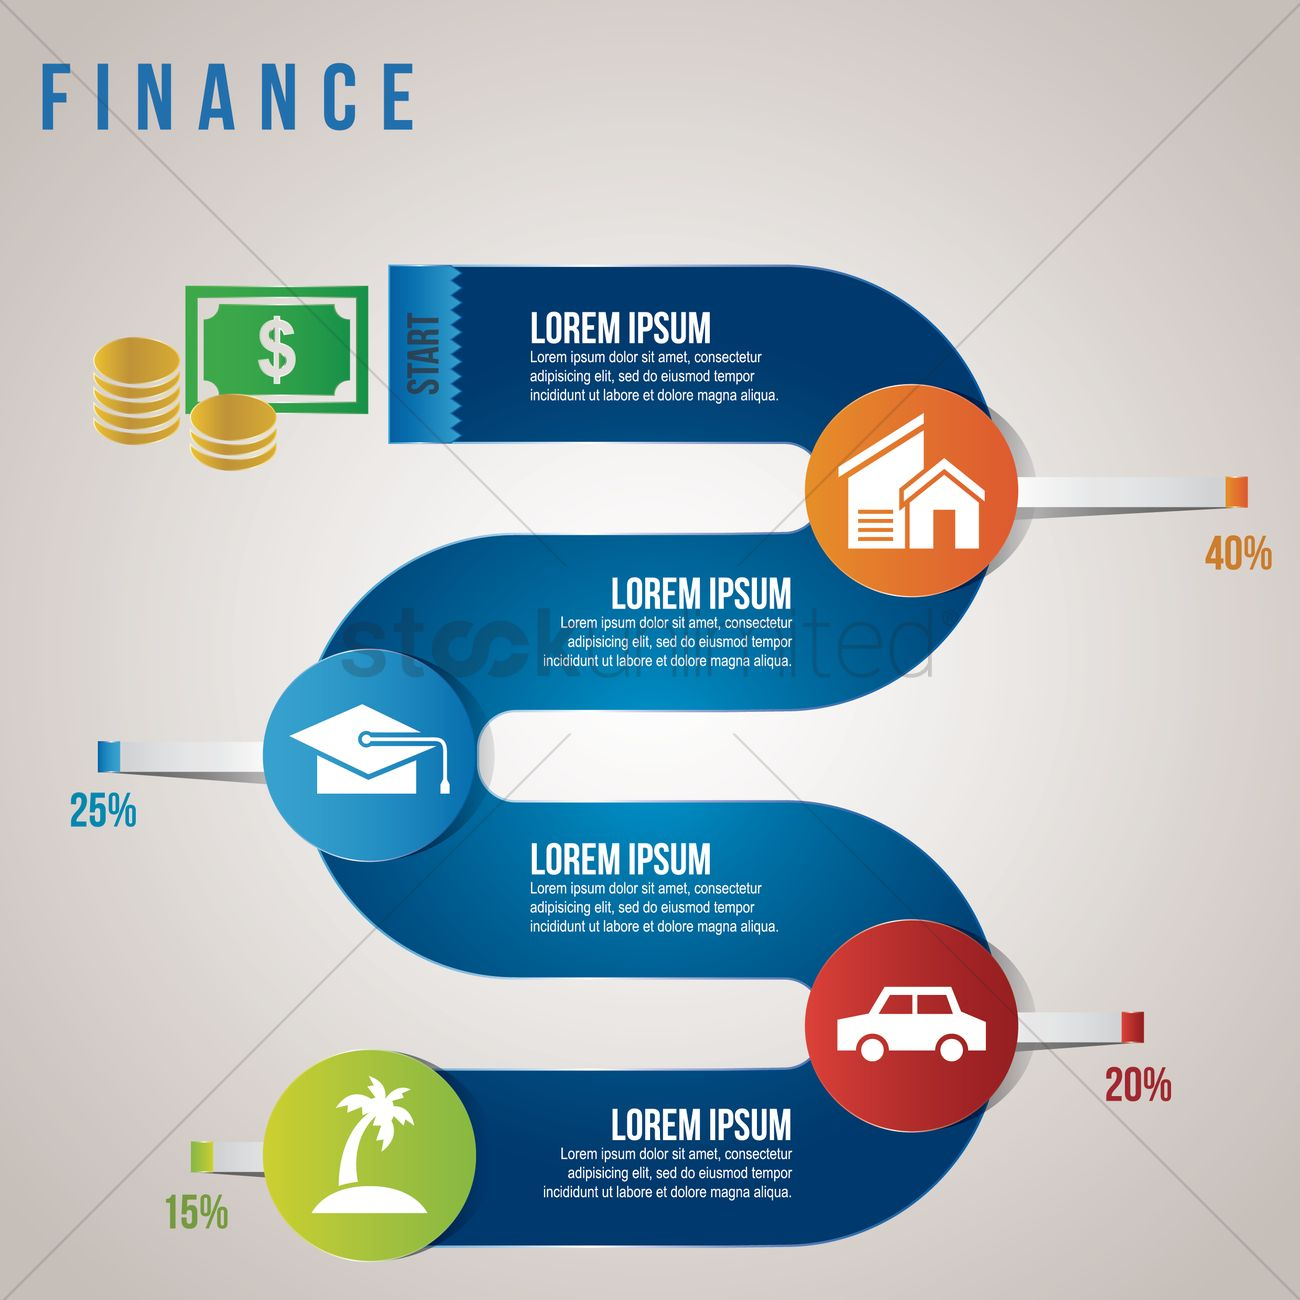 Finance Graphics: Finance Infographic Vector Image - 1513293